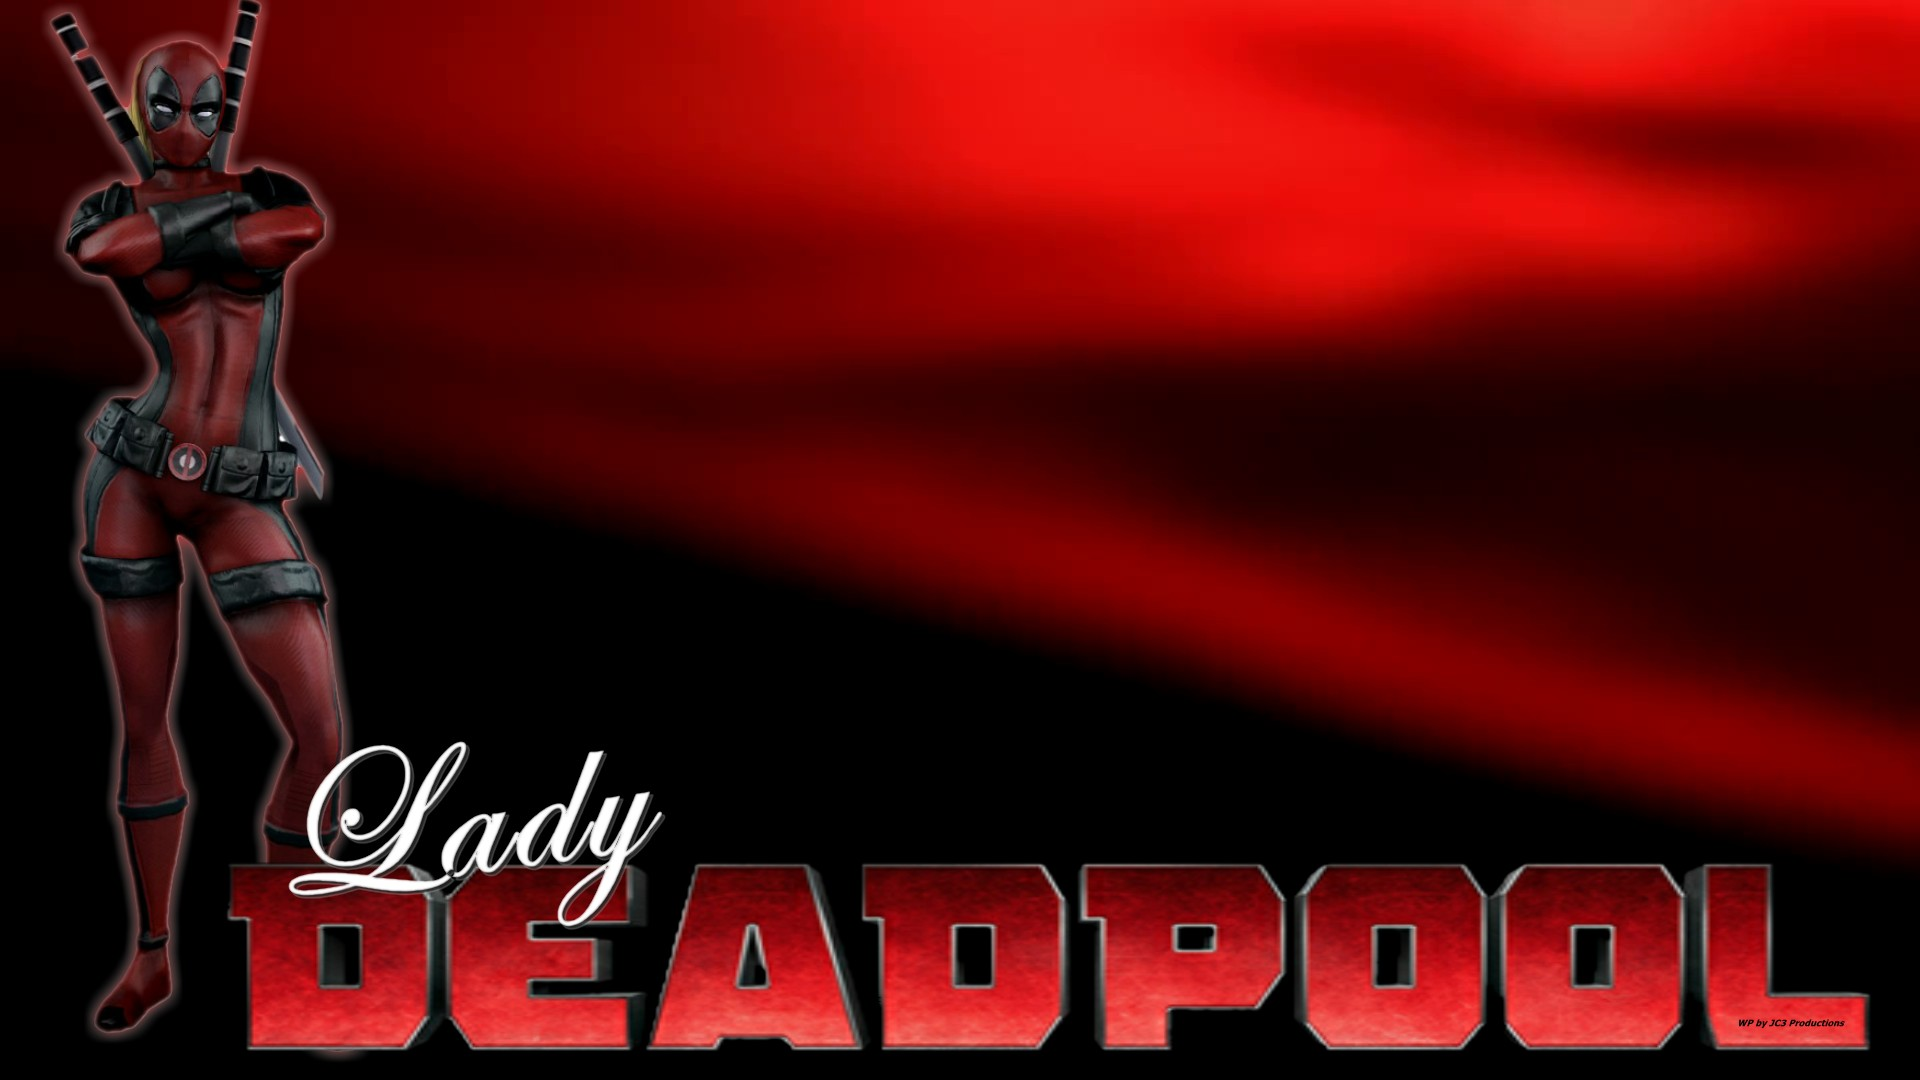 Lady Deadpool Wallpaper - With Attitude 2 by Curtdawg53